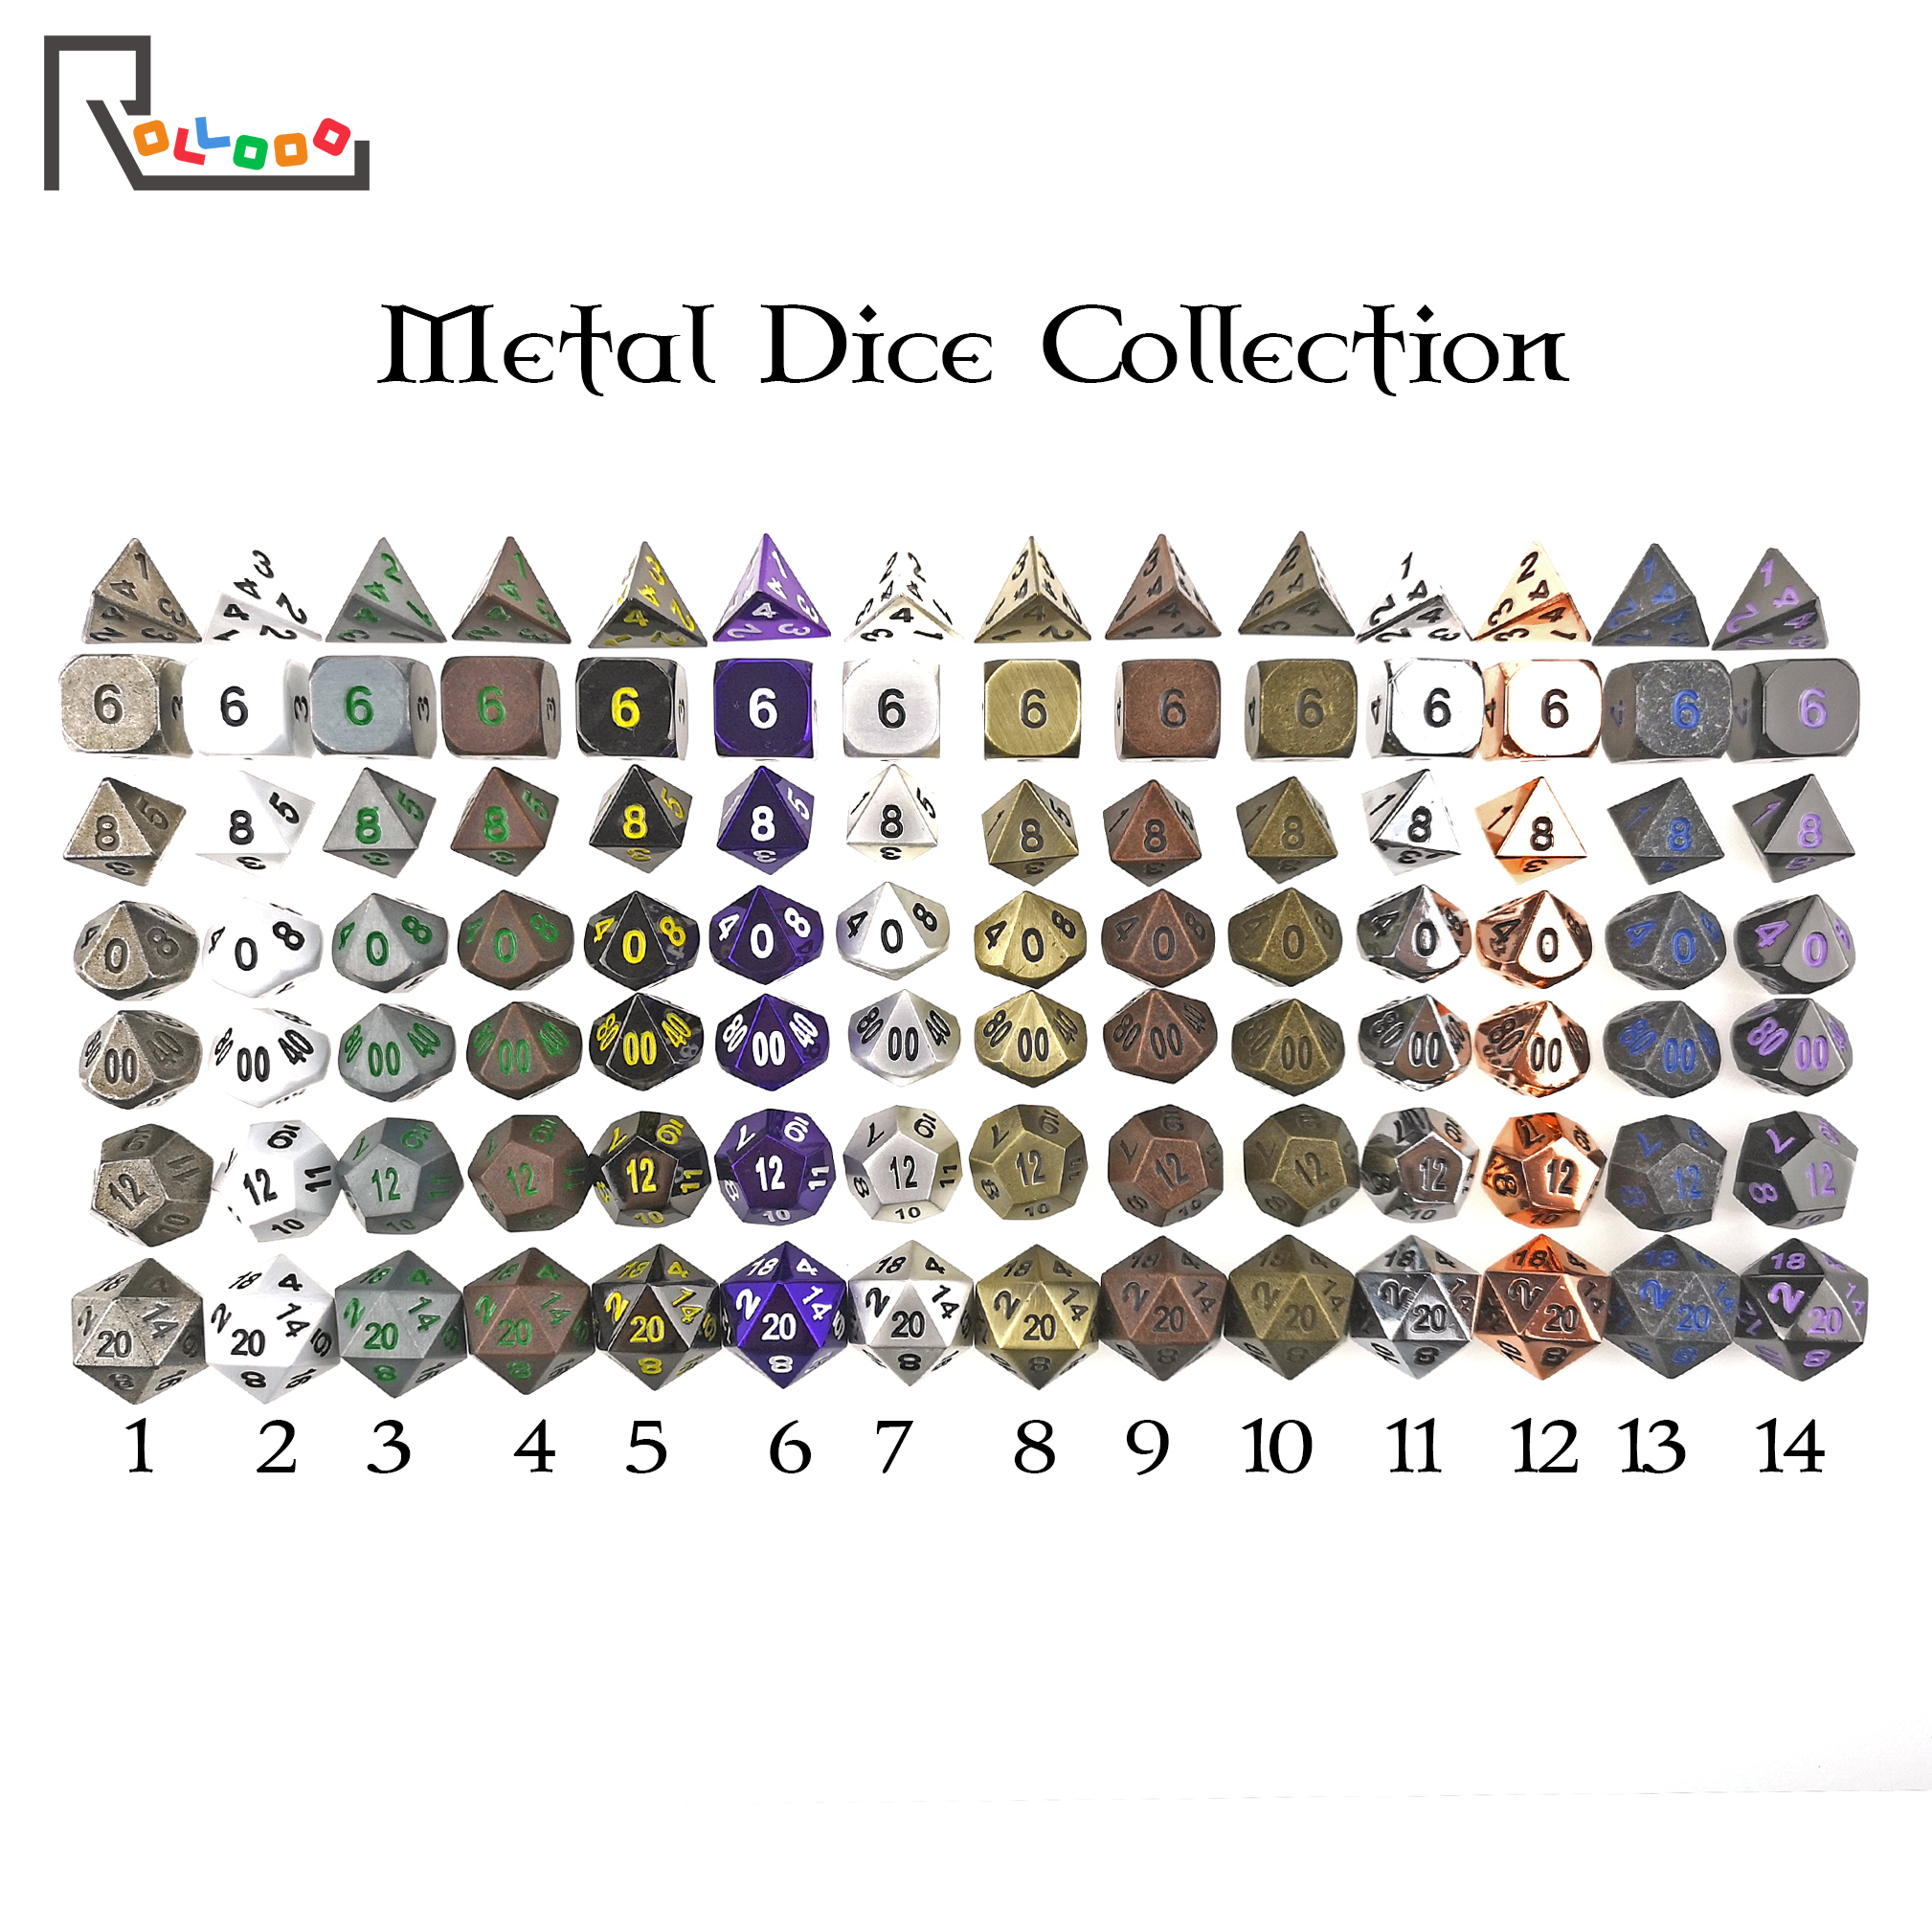 Rollooo DND Metal Dice Collection D&D Sets For RPG Roleplaying Games D4 D6 D8 D10 D% D12 D20